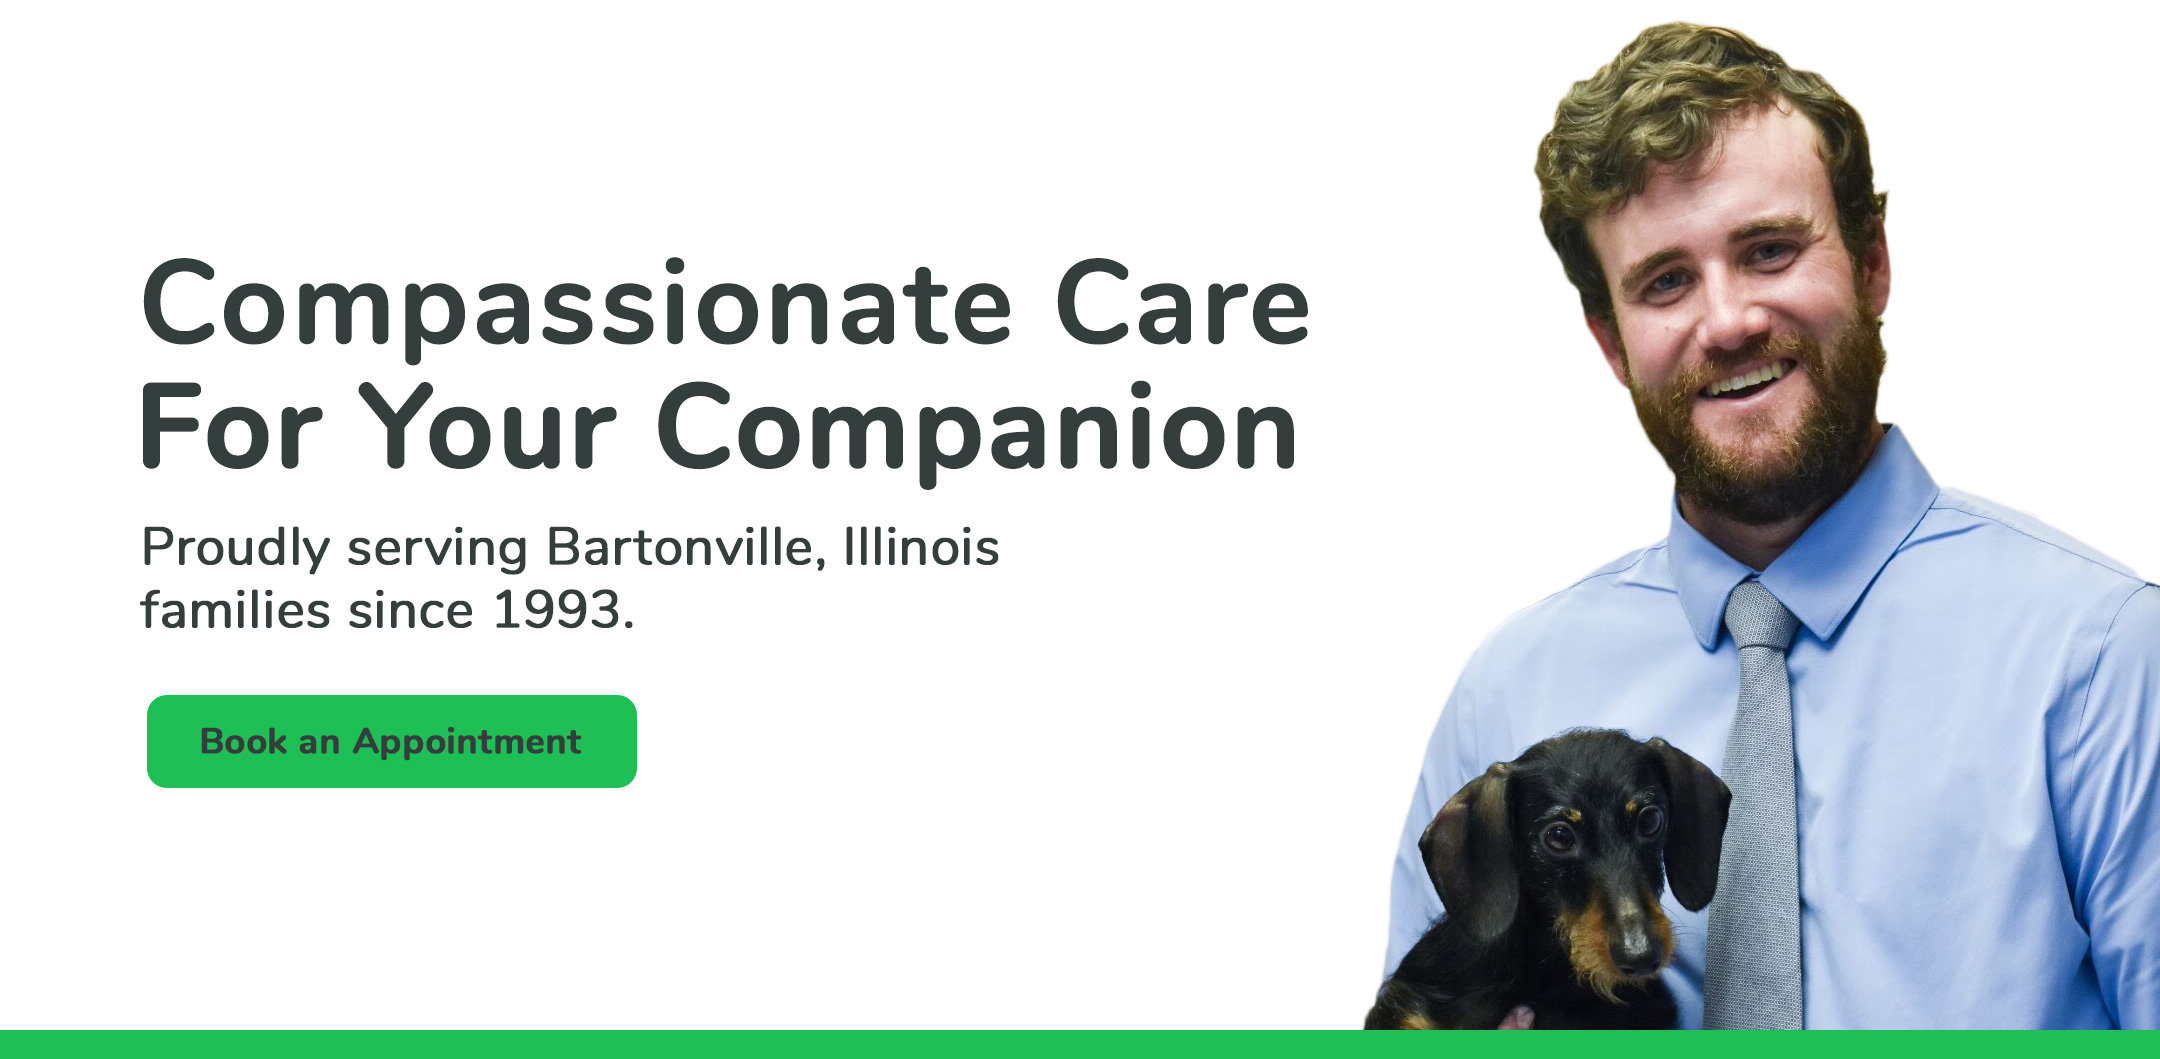 Compassionate Care For Your Companion. Proudly serving Bartonville Illinois families since 1993.